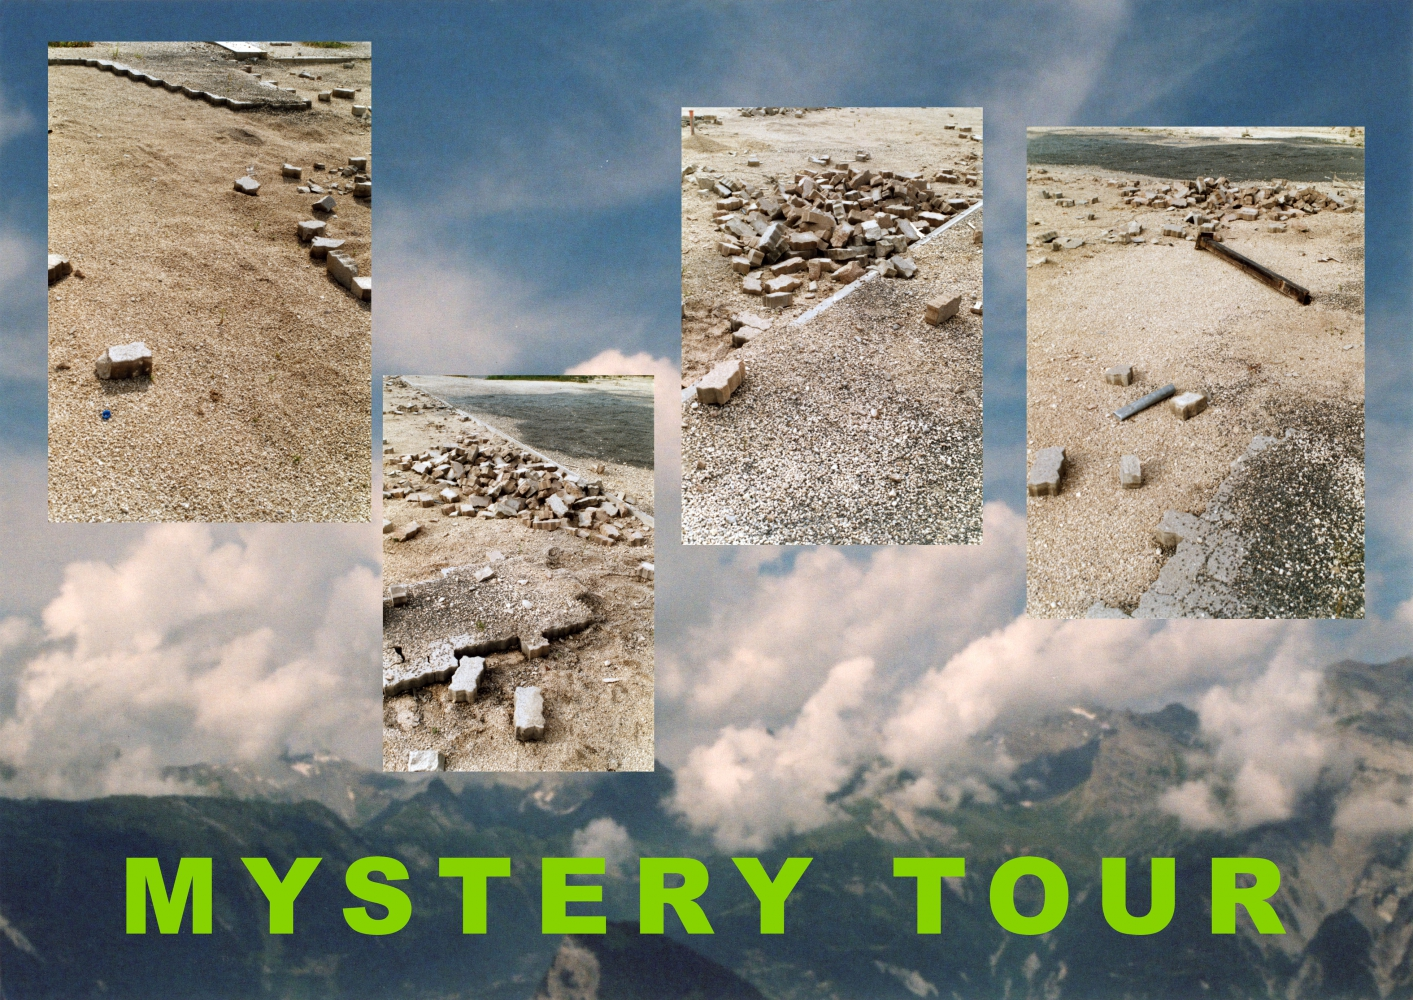 Mystery Tour 07 - 2006